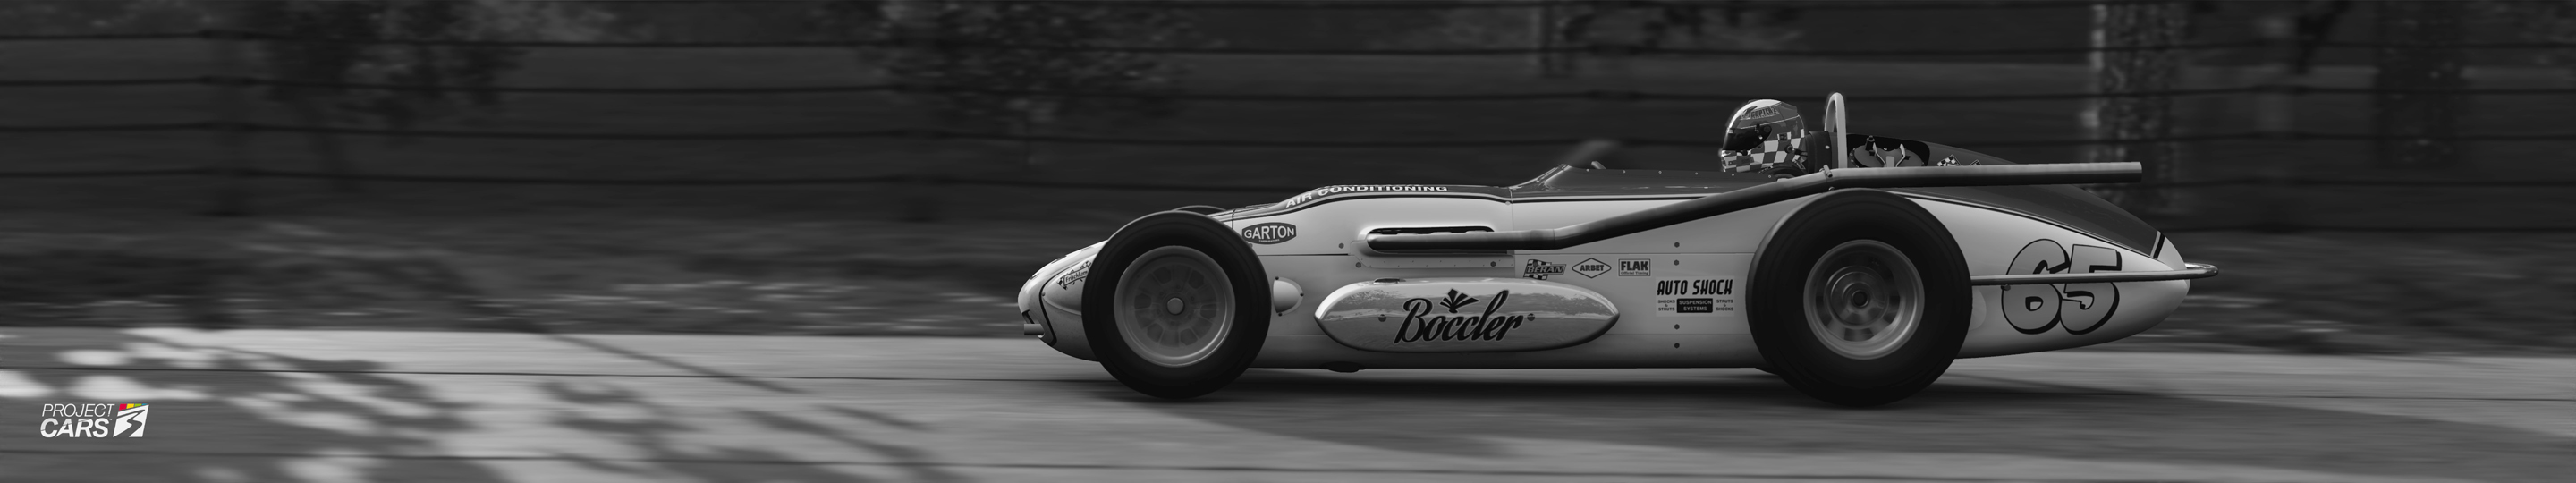 0 PROJECT CARS 3 WATSON ROADSTER at MONZA HISTORIC copy.jpg